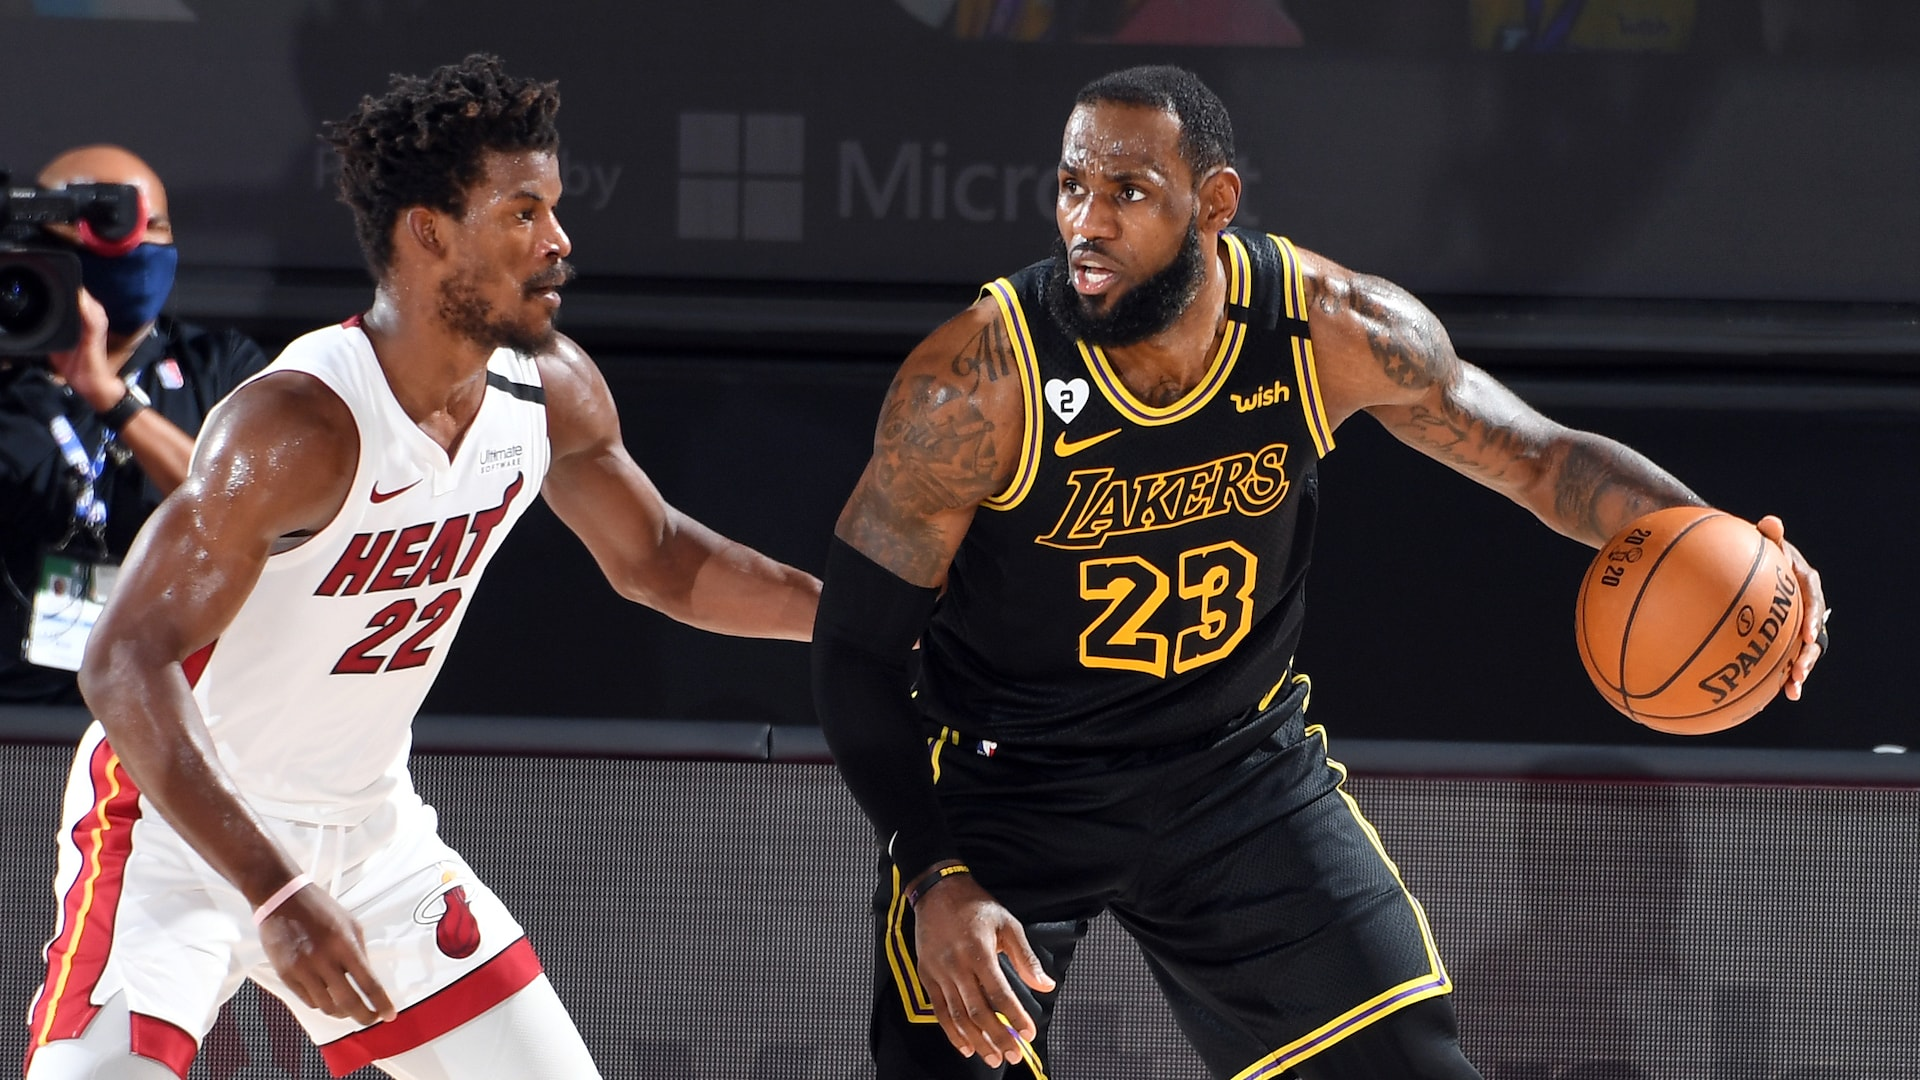 NBA players react to Game 5 thriller: 'LeBron made the right play'